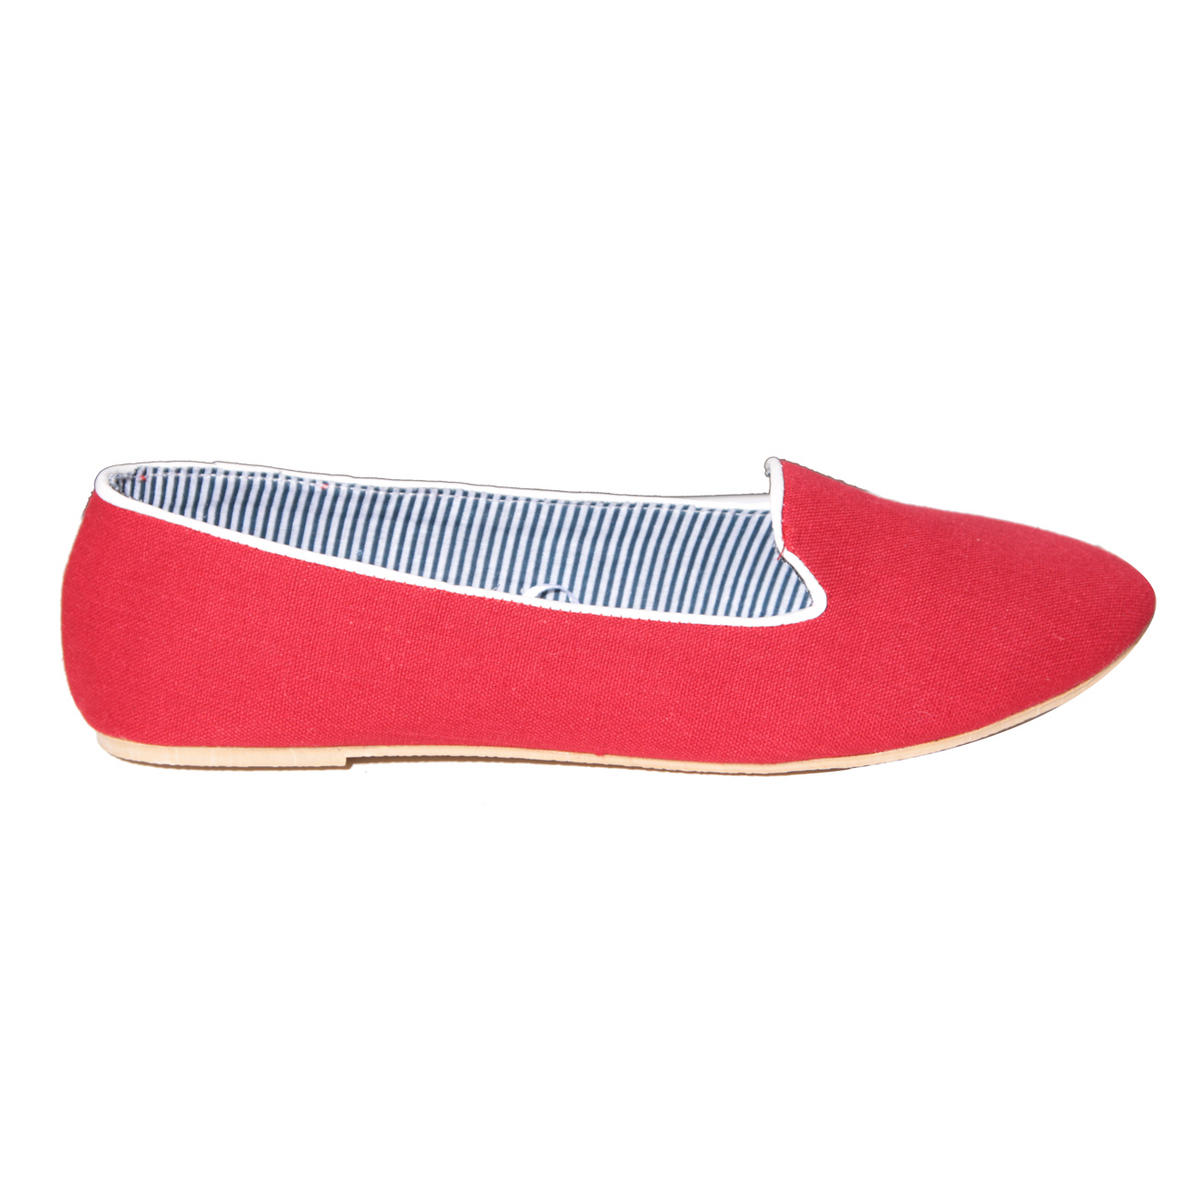 Red Flat Slipper Shoe Preview